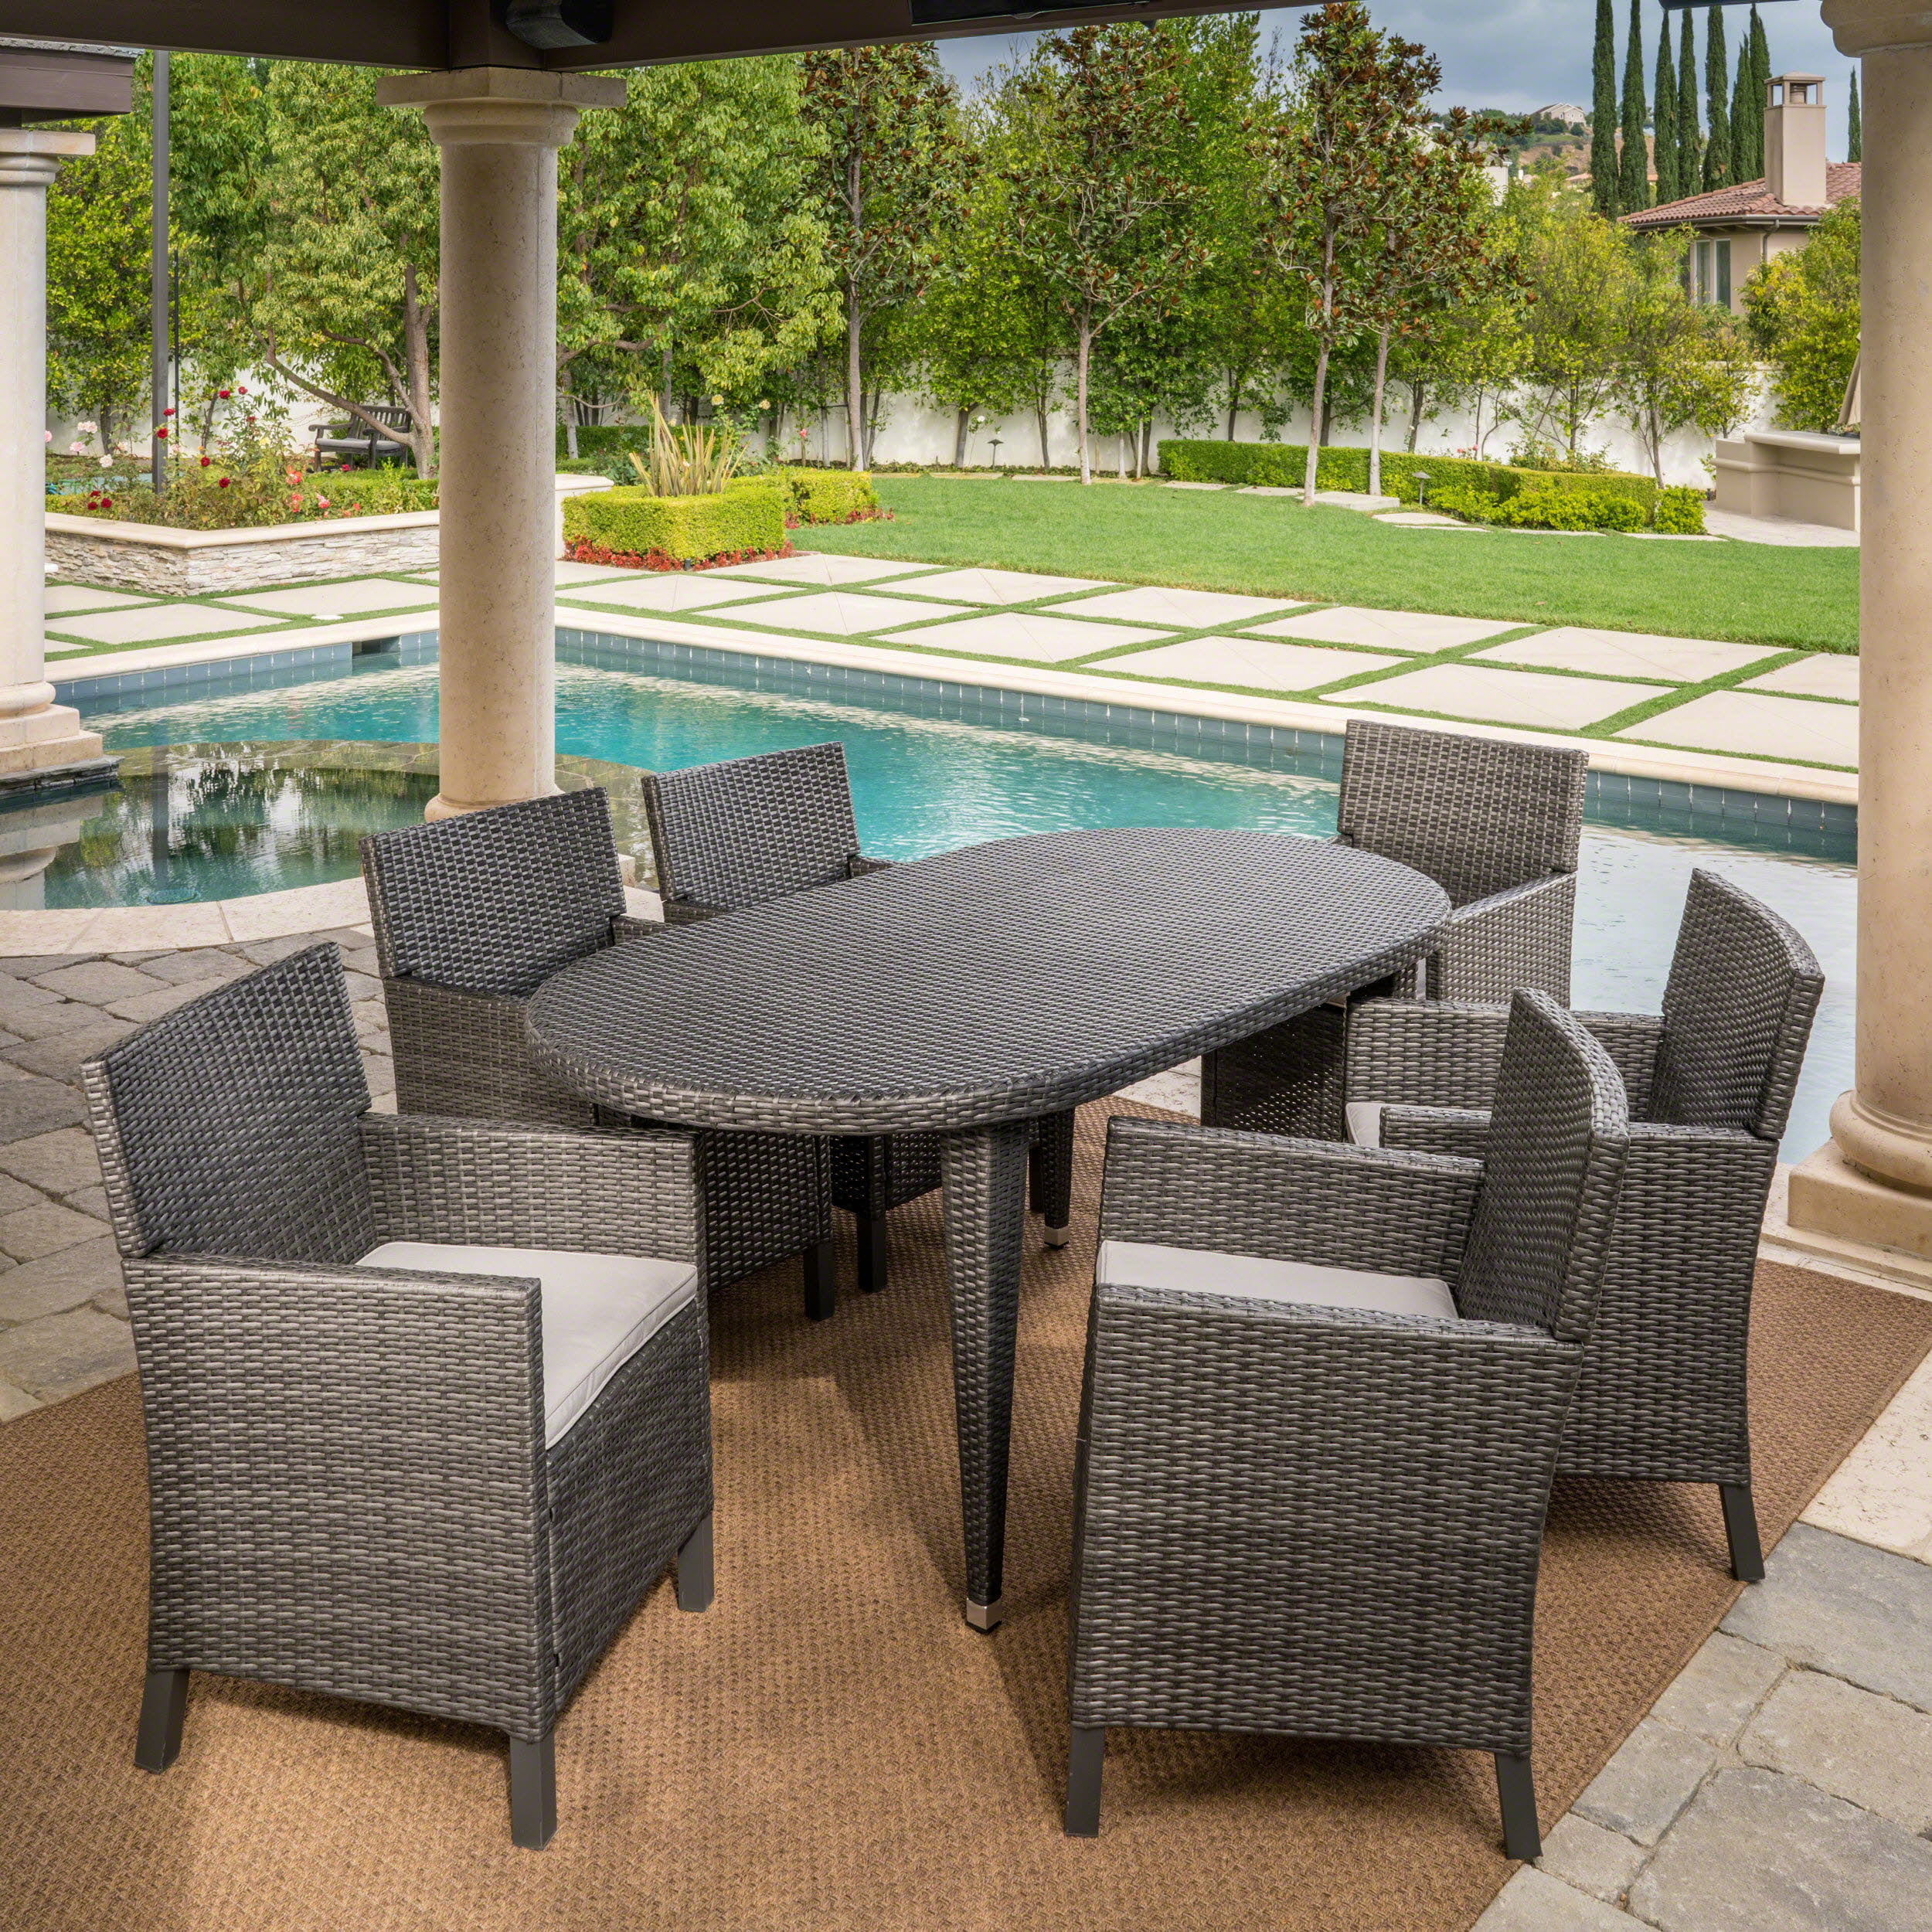 Shaw Outdoor 7 Piece Wicker Oval Dining Set With Cushions